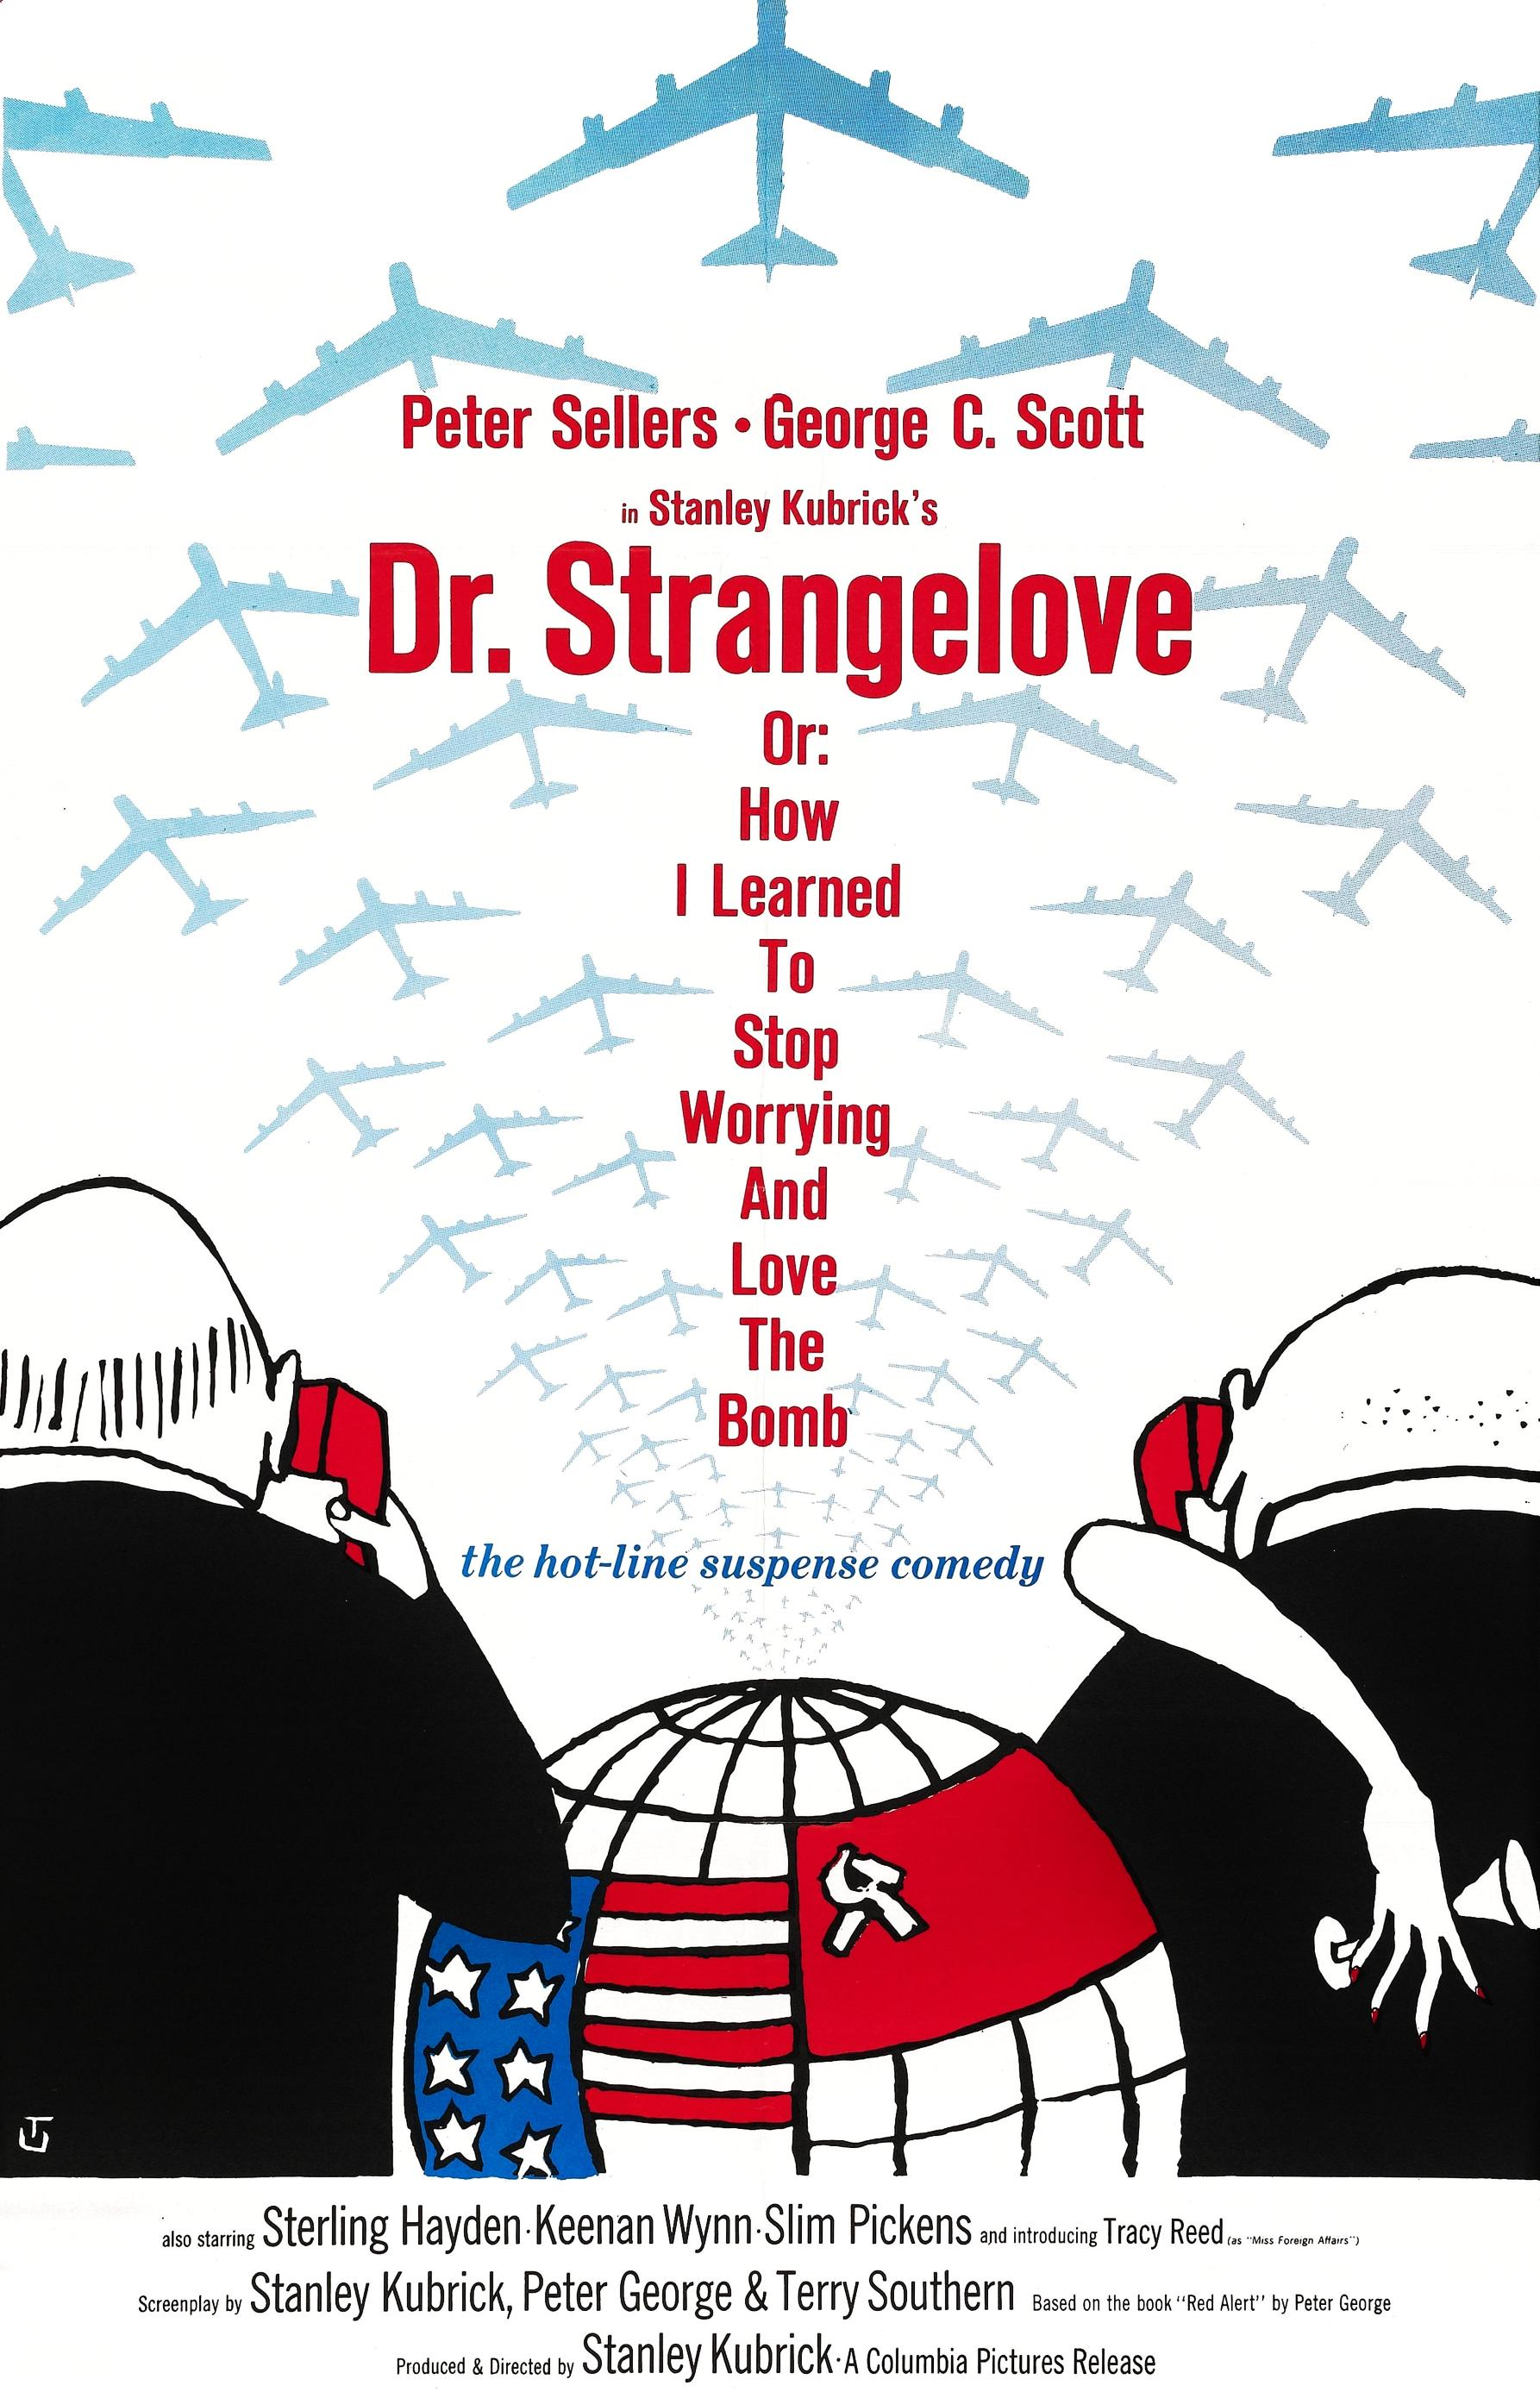 DAKTARAS STREINDŽLAVAS (1964) / DR. STRANGELOVE OR: HOW I LEARNED TO STOP WORRYING AND LOVE THE BOMB